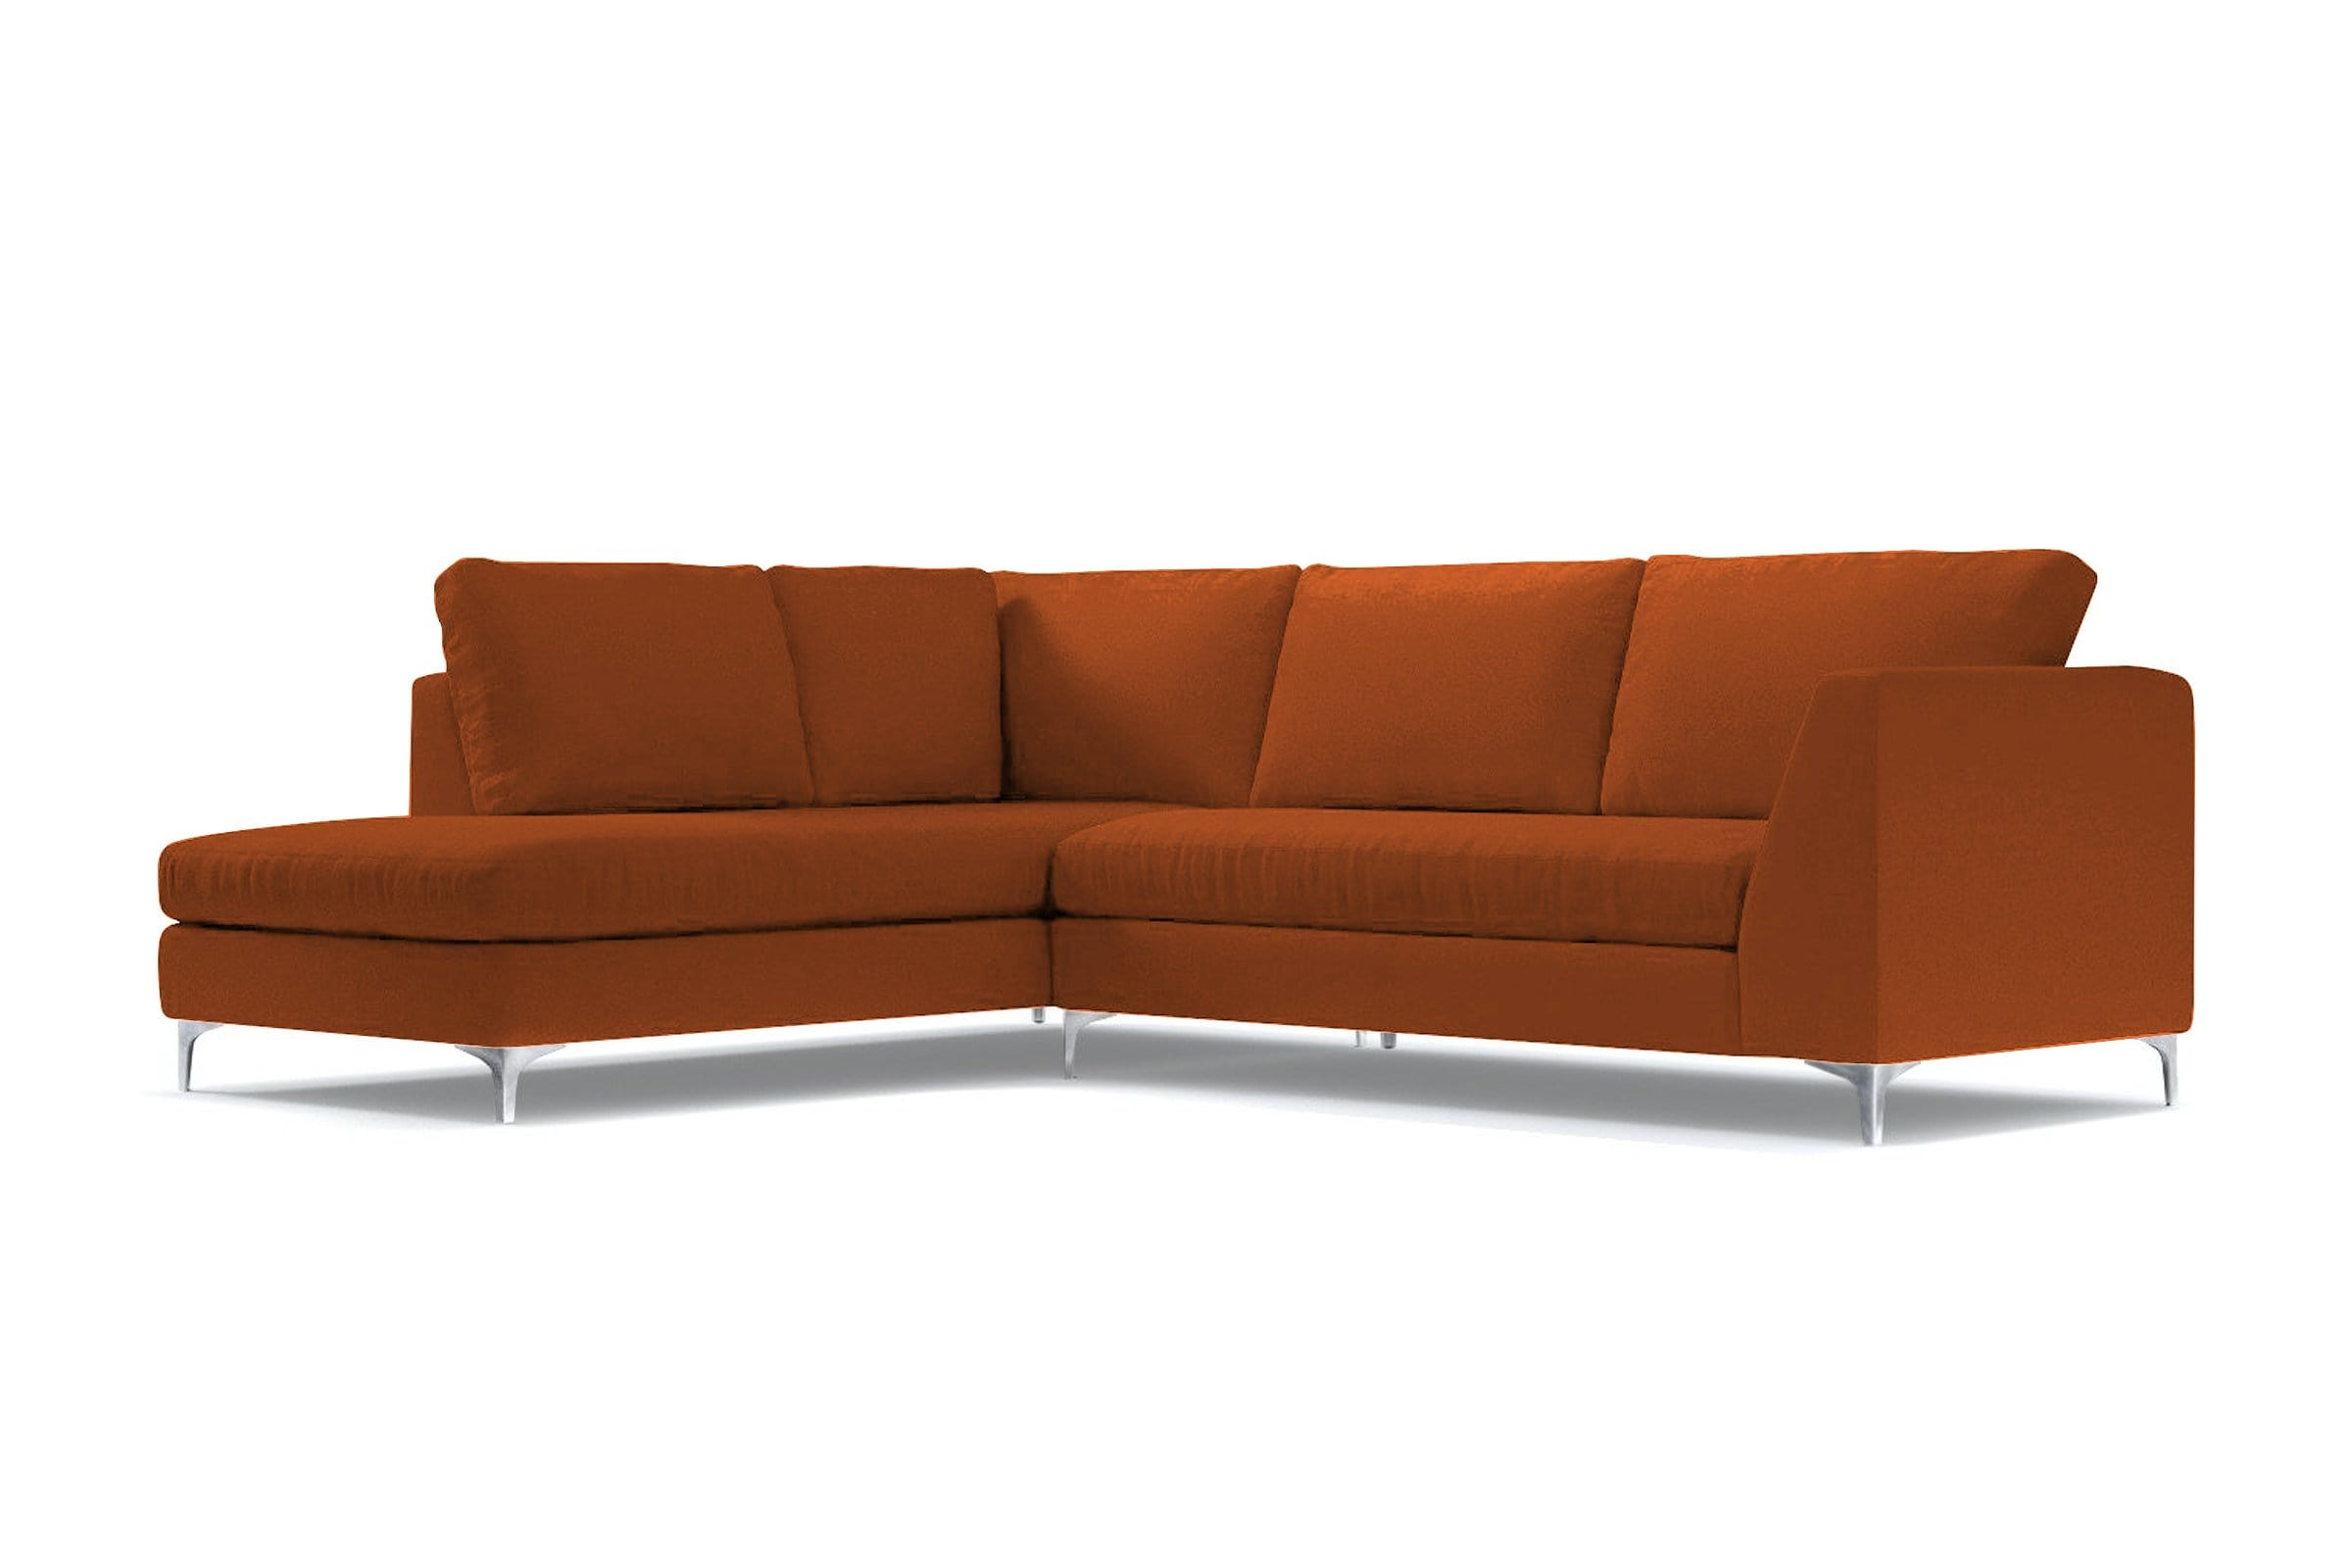 Mulholland 2pc Sectional Sofa - Orange Velvet - Modern Sectional Sofa Made in USA - Sold by Apt2B